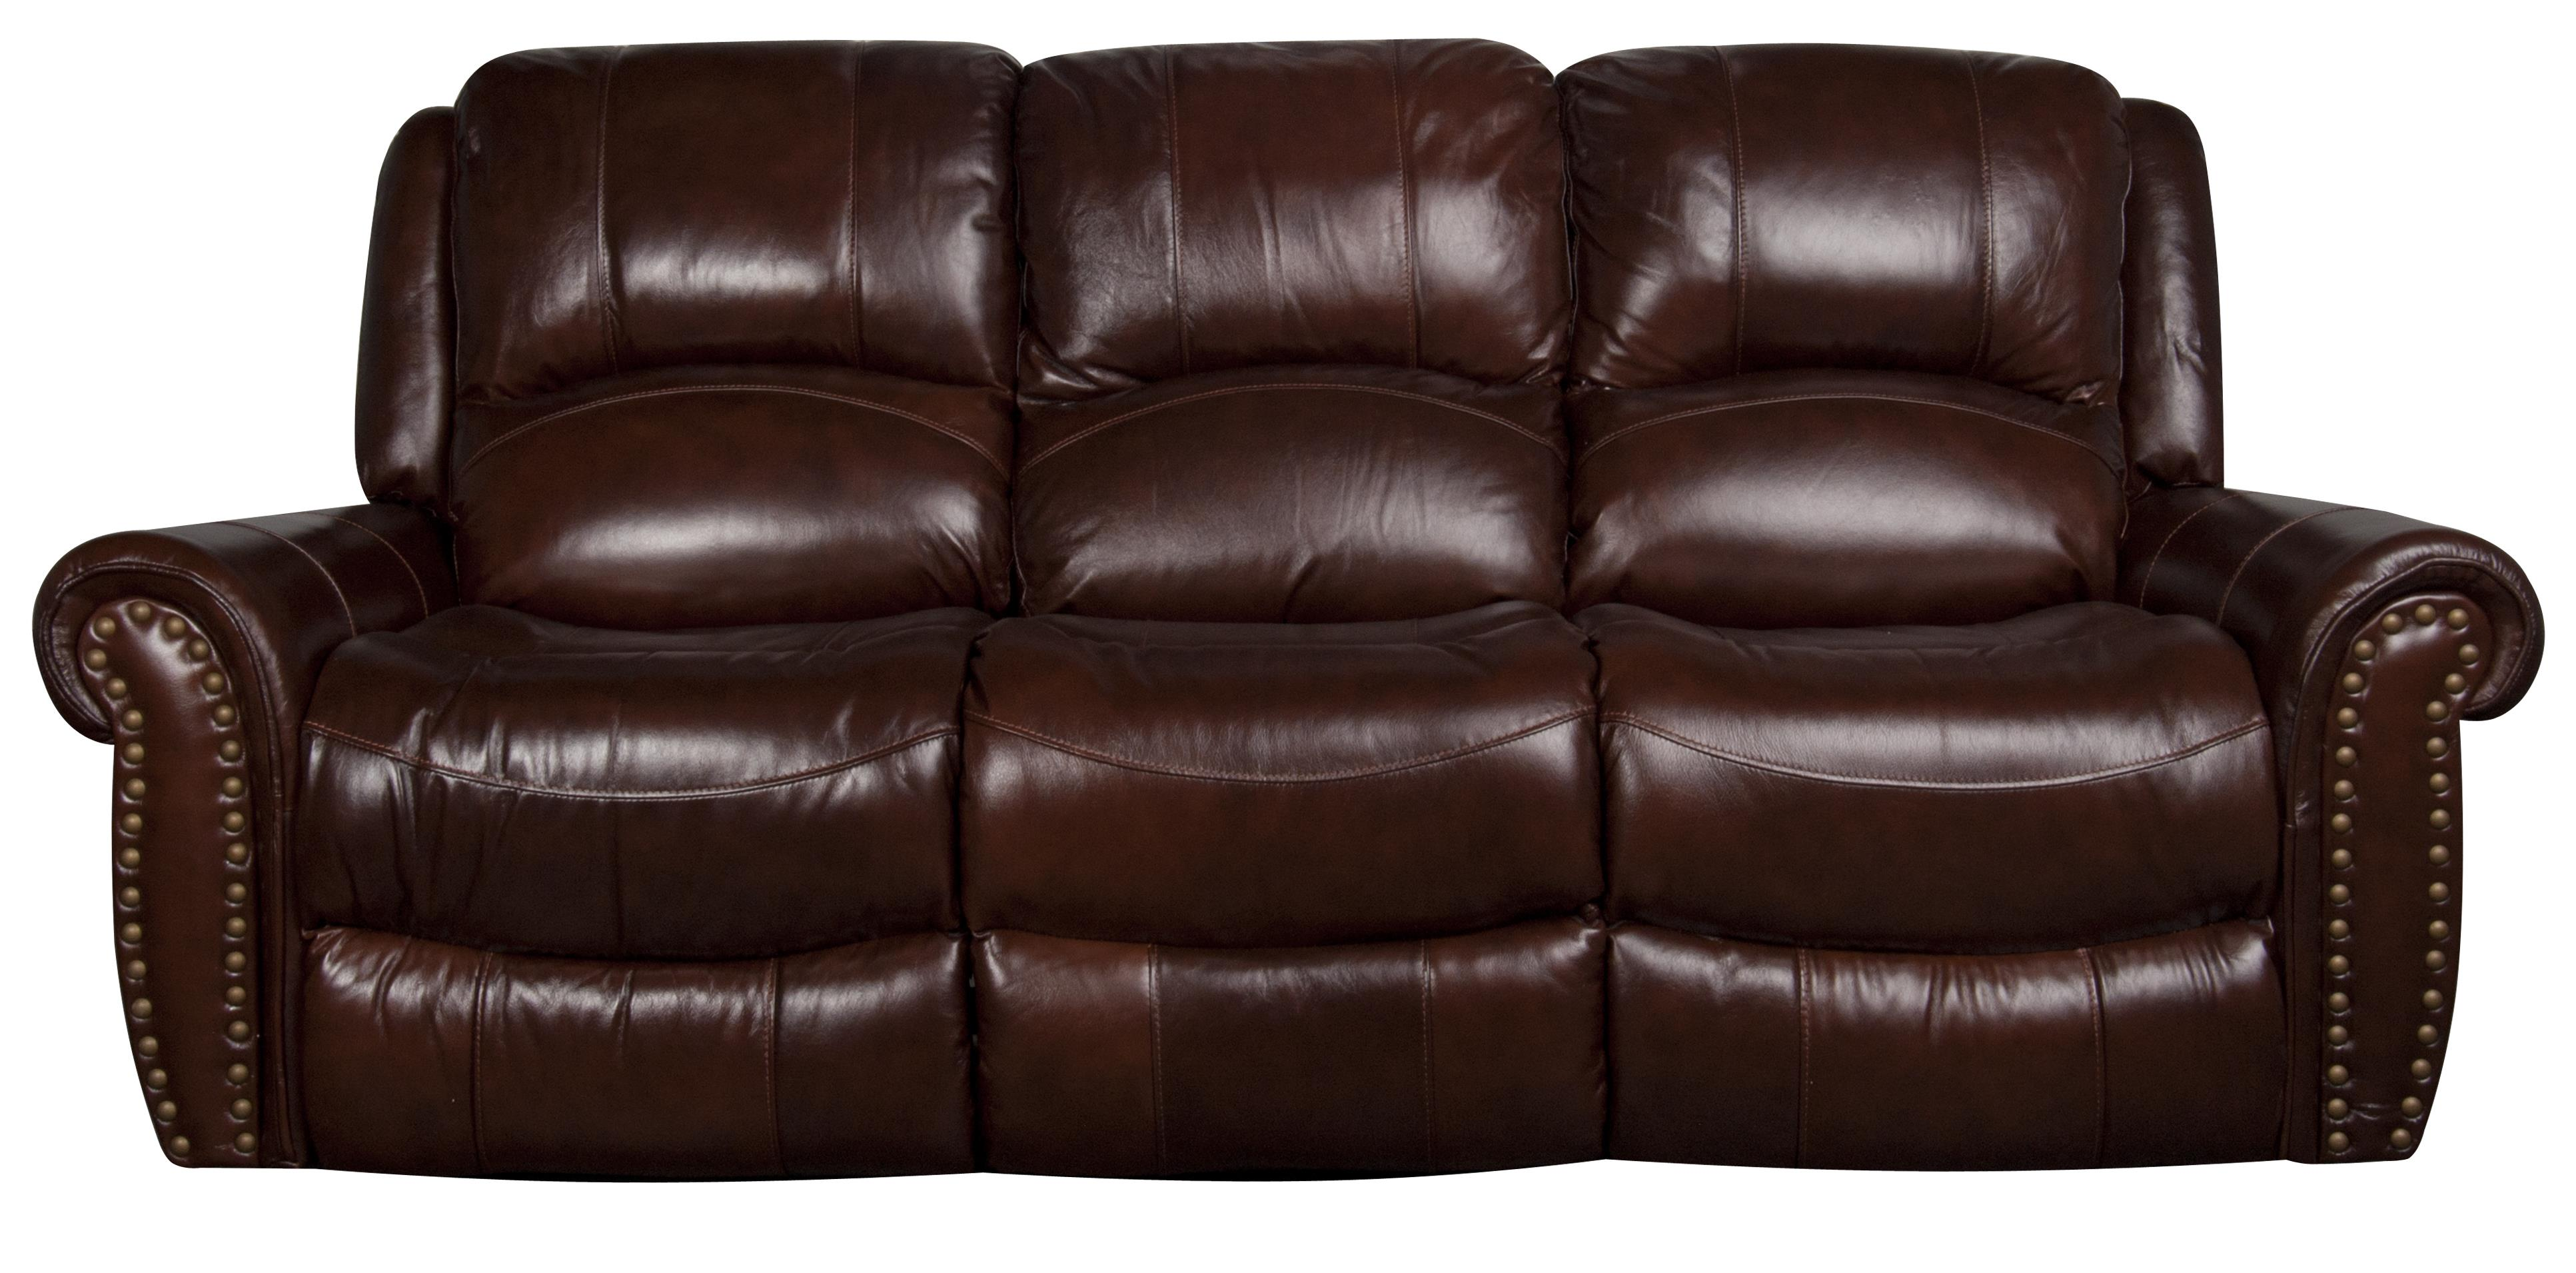 Morris Home Furnishings Fleming Fleming Power Leather-Match* Sofa - Item Number: 755353025